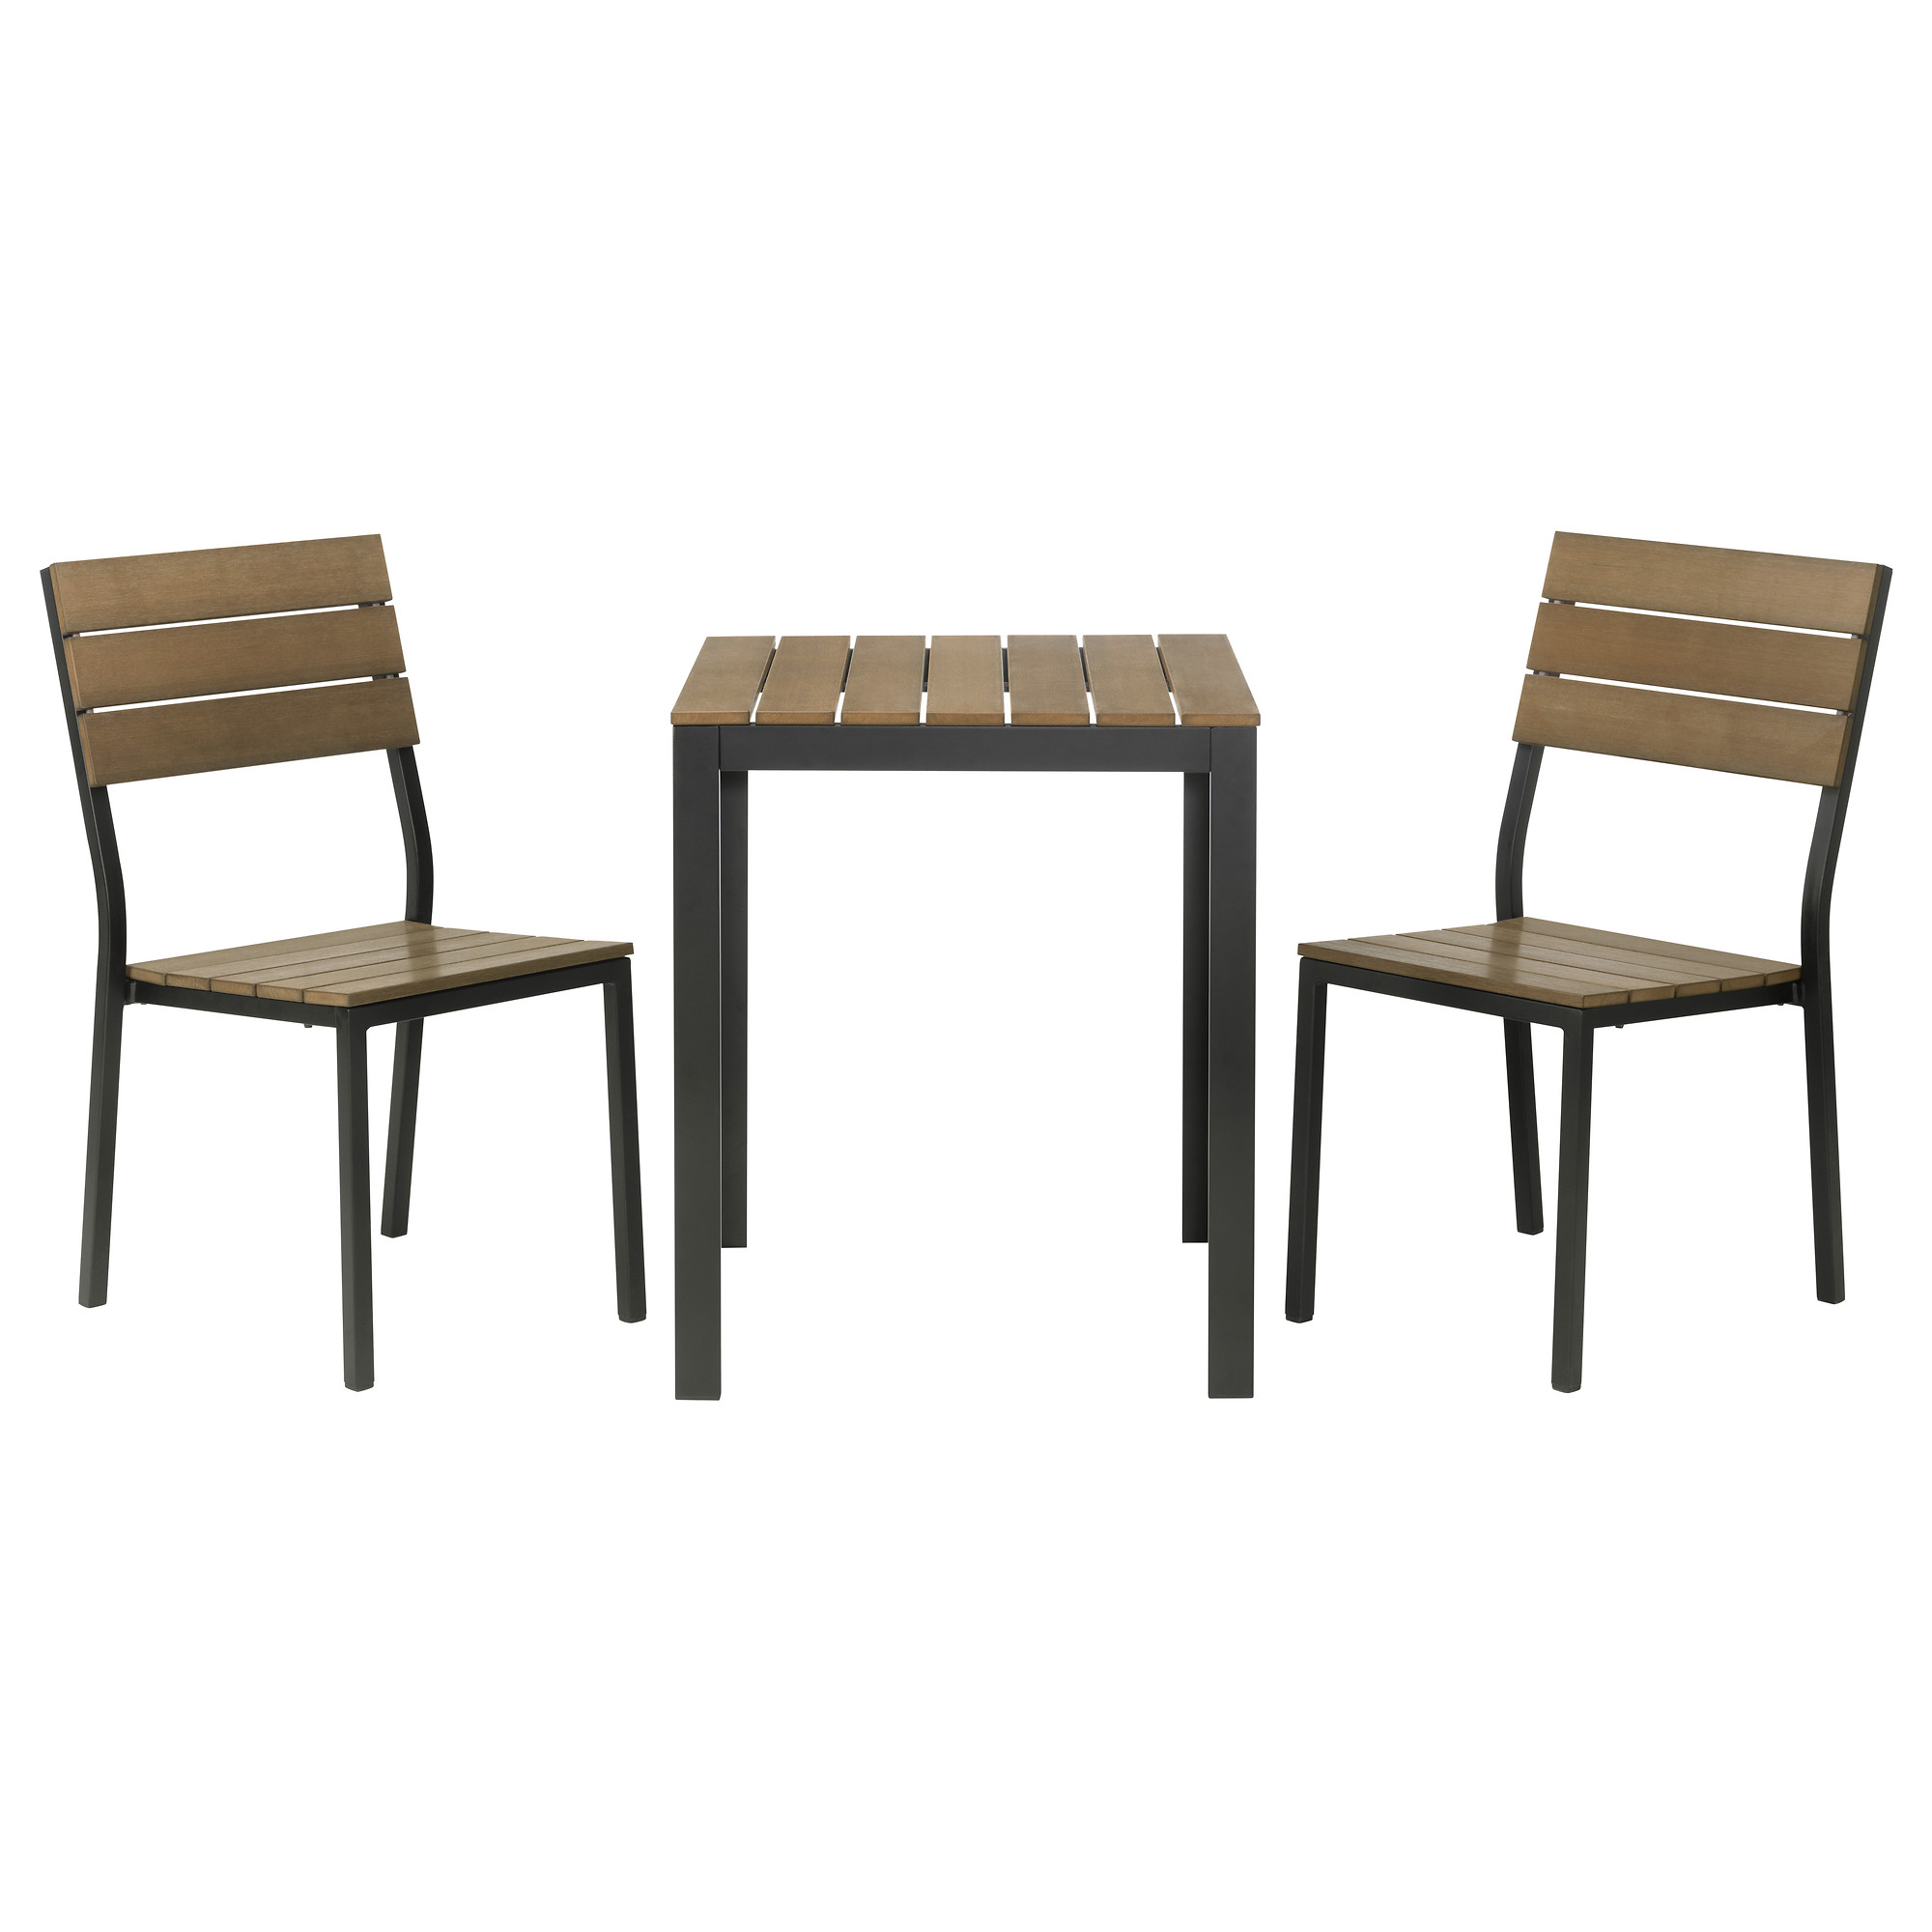 outdoor table and chairs falster table+2 chairs, outdoor, black, ... TWLSUYP